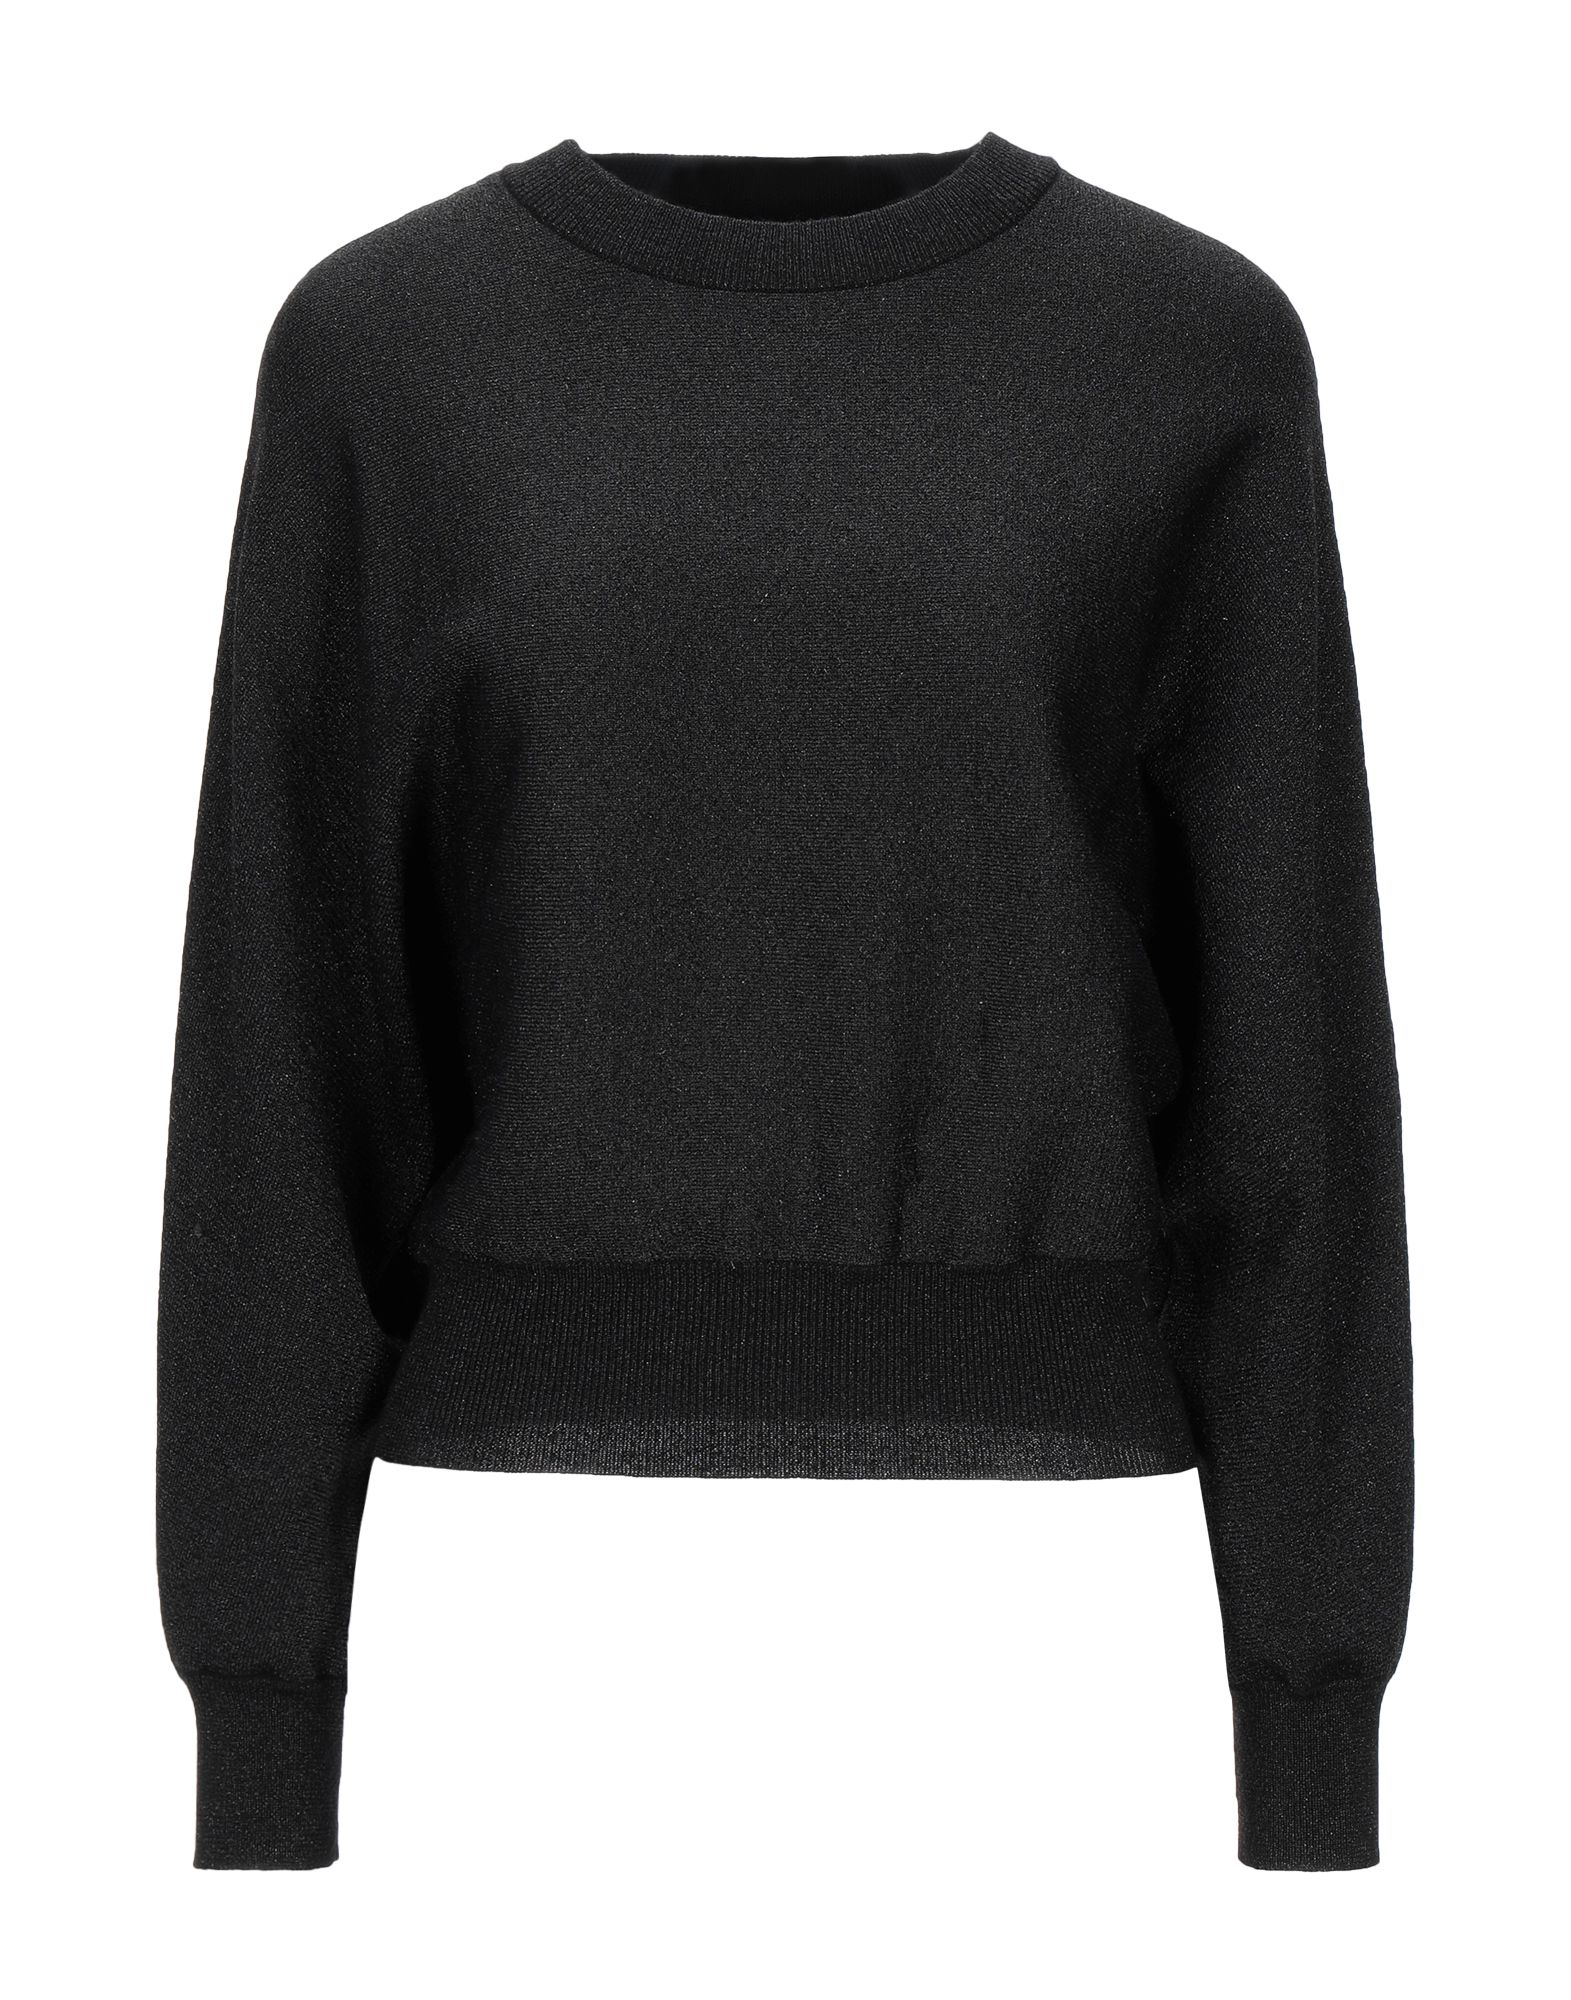 ALICE + OLIVIA Sweaters. knitted, lamé, no appliqués, lightweight knit, round collar, solid color, long sleeves, no pockets, stretch. 49% Wool, 32% Polyester, 16% Nylon, 3% Elastane